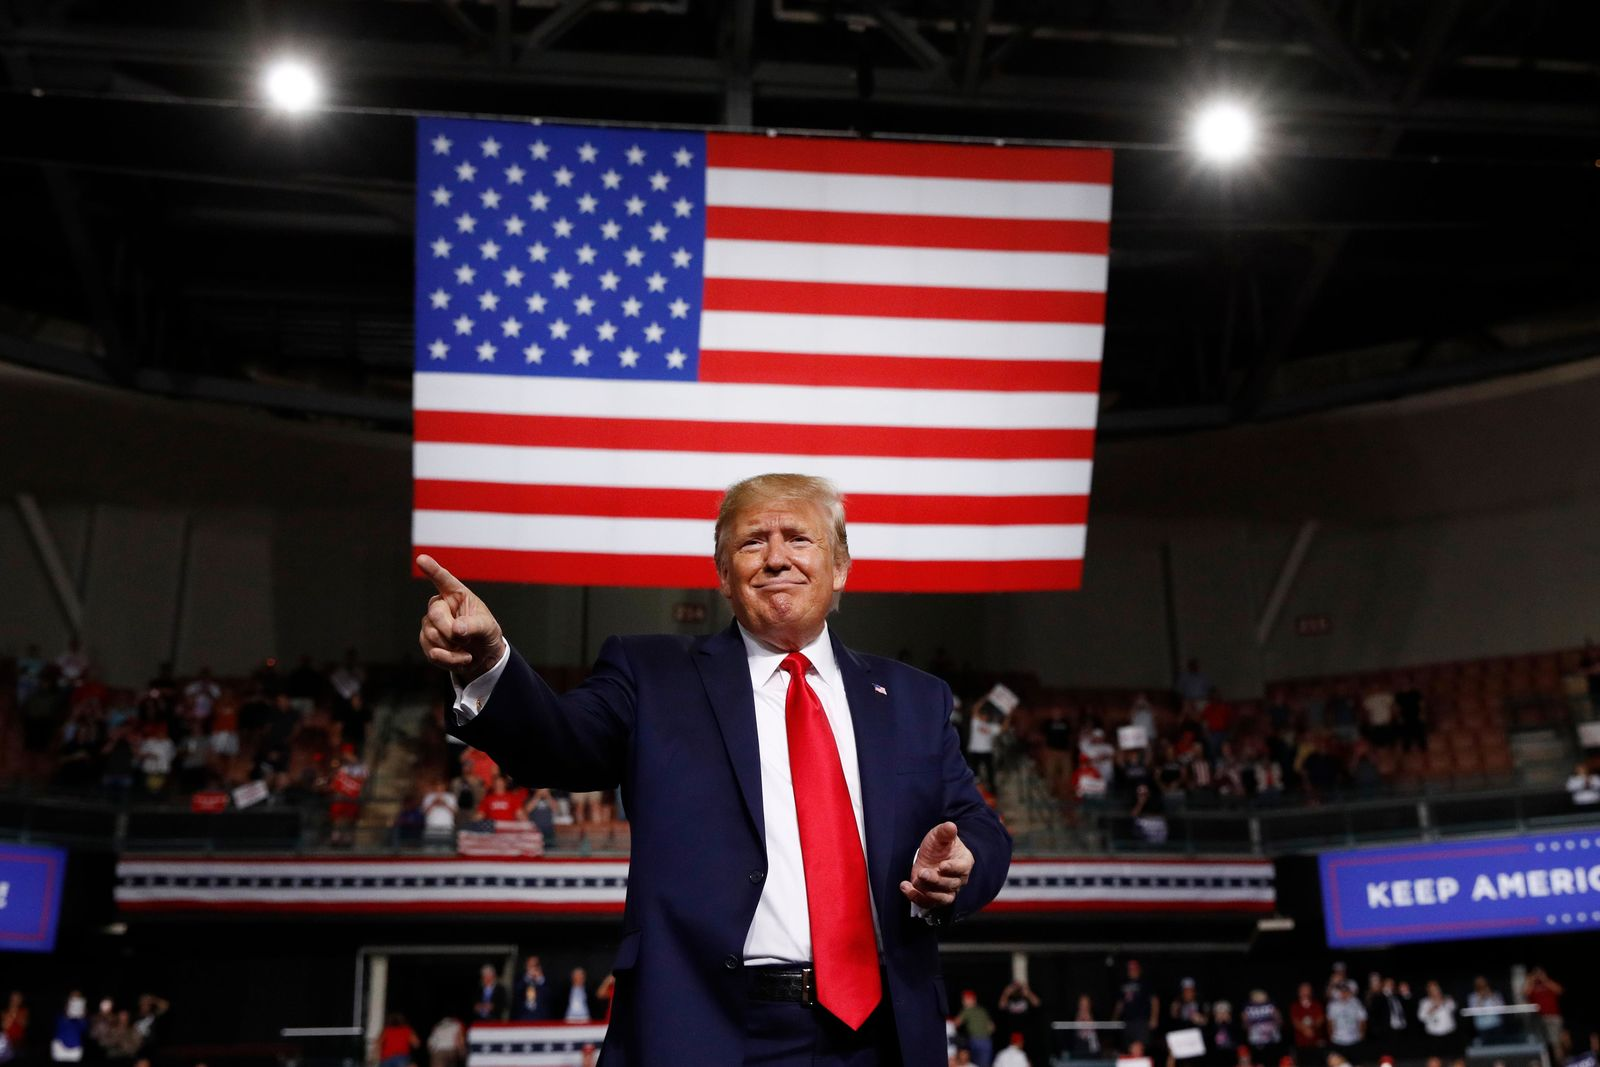 President Donald Trump reacts at the end of his speech at a campaign rally, Thursday, Aug. 15, 2019, in Manchester, N.H. (AP Photo/Patrick Semansky)